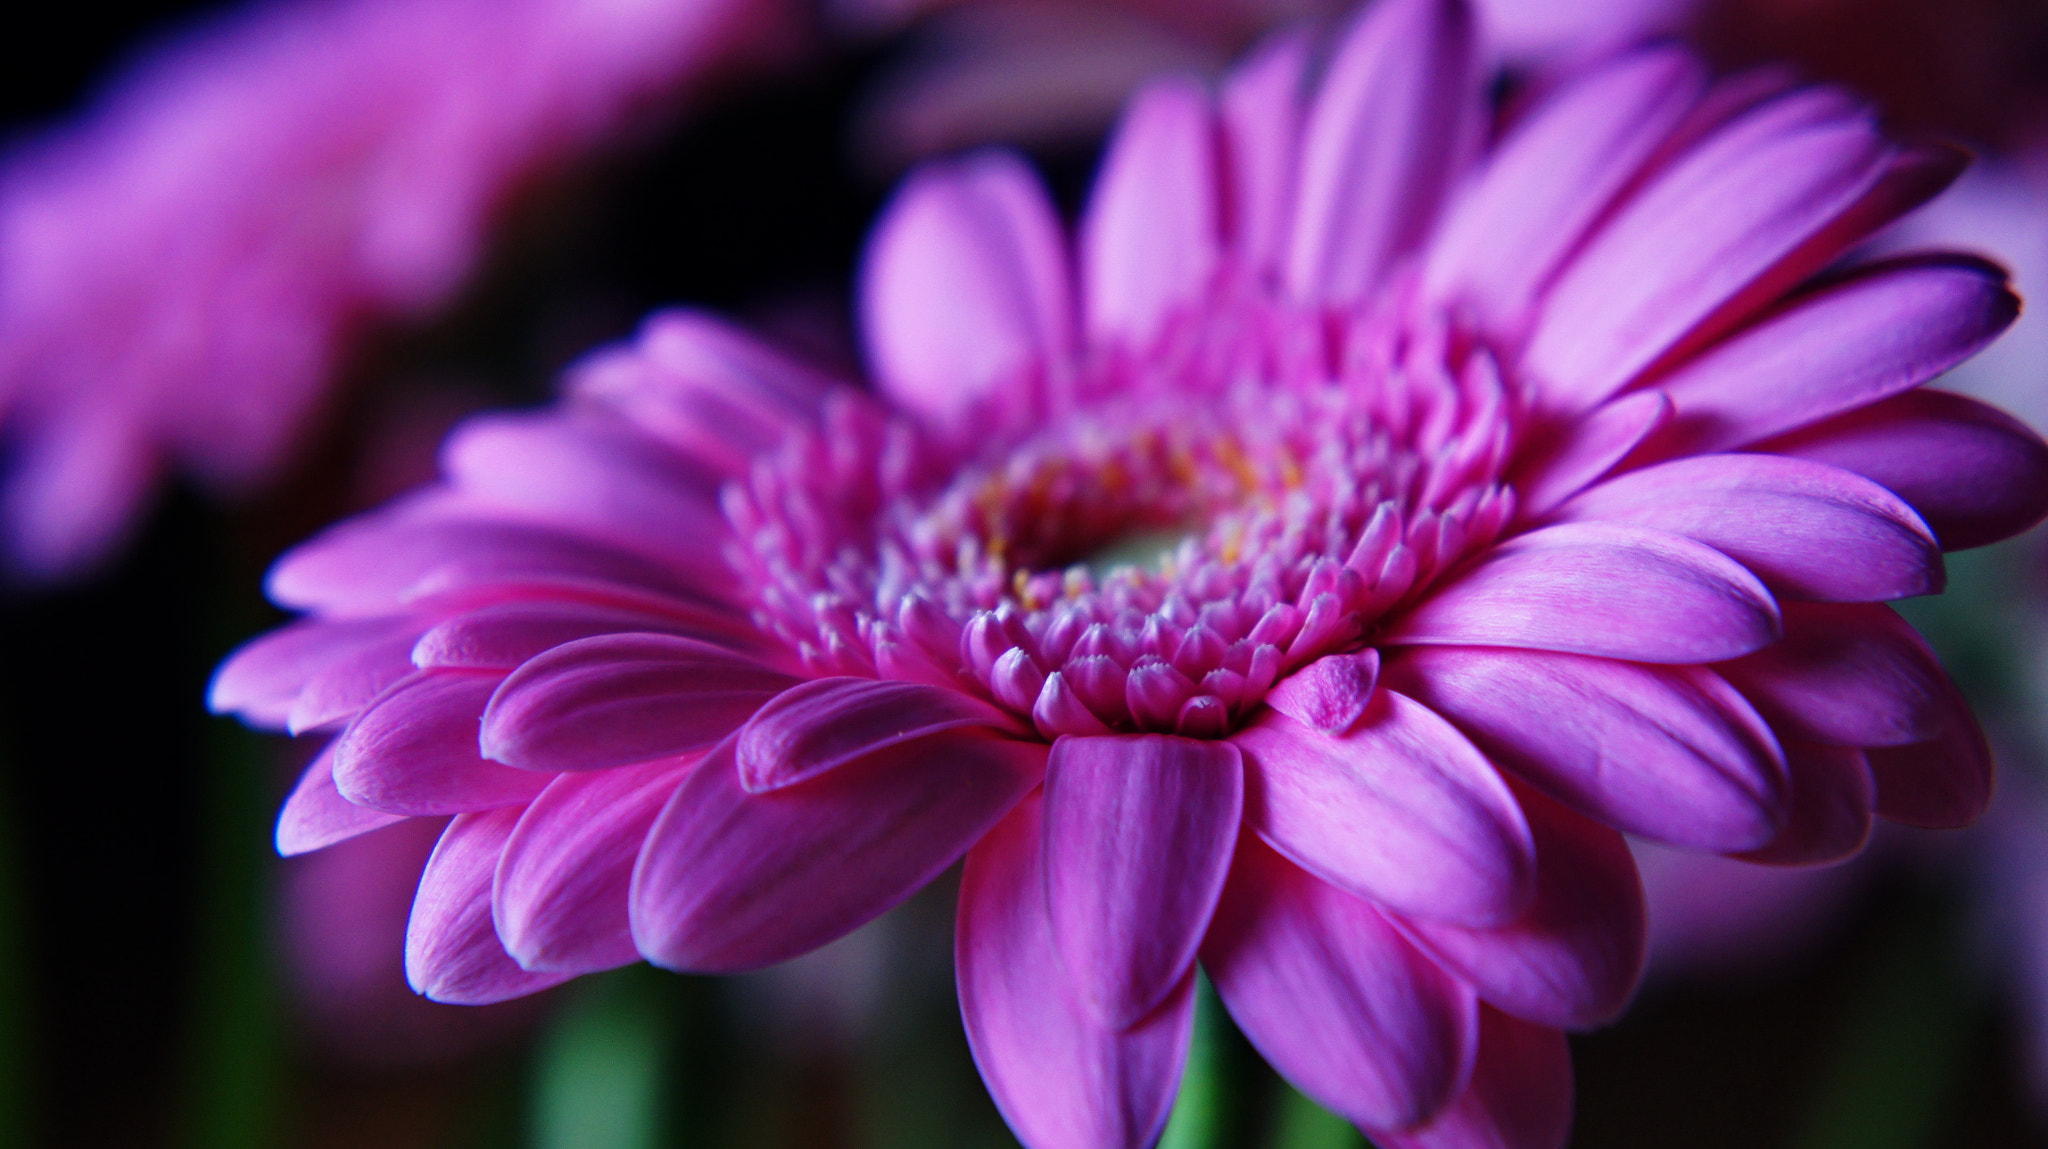 Photograph flowers by Hiwa  on 500px